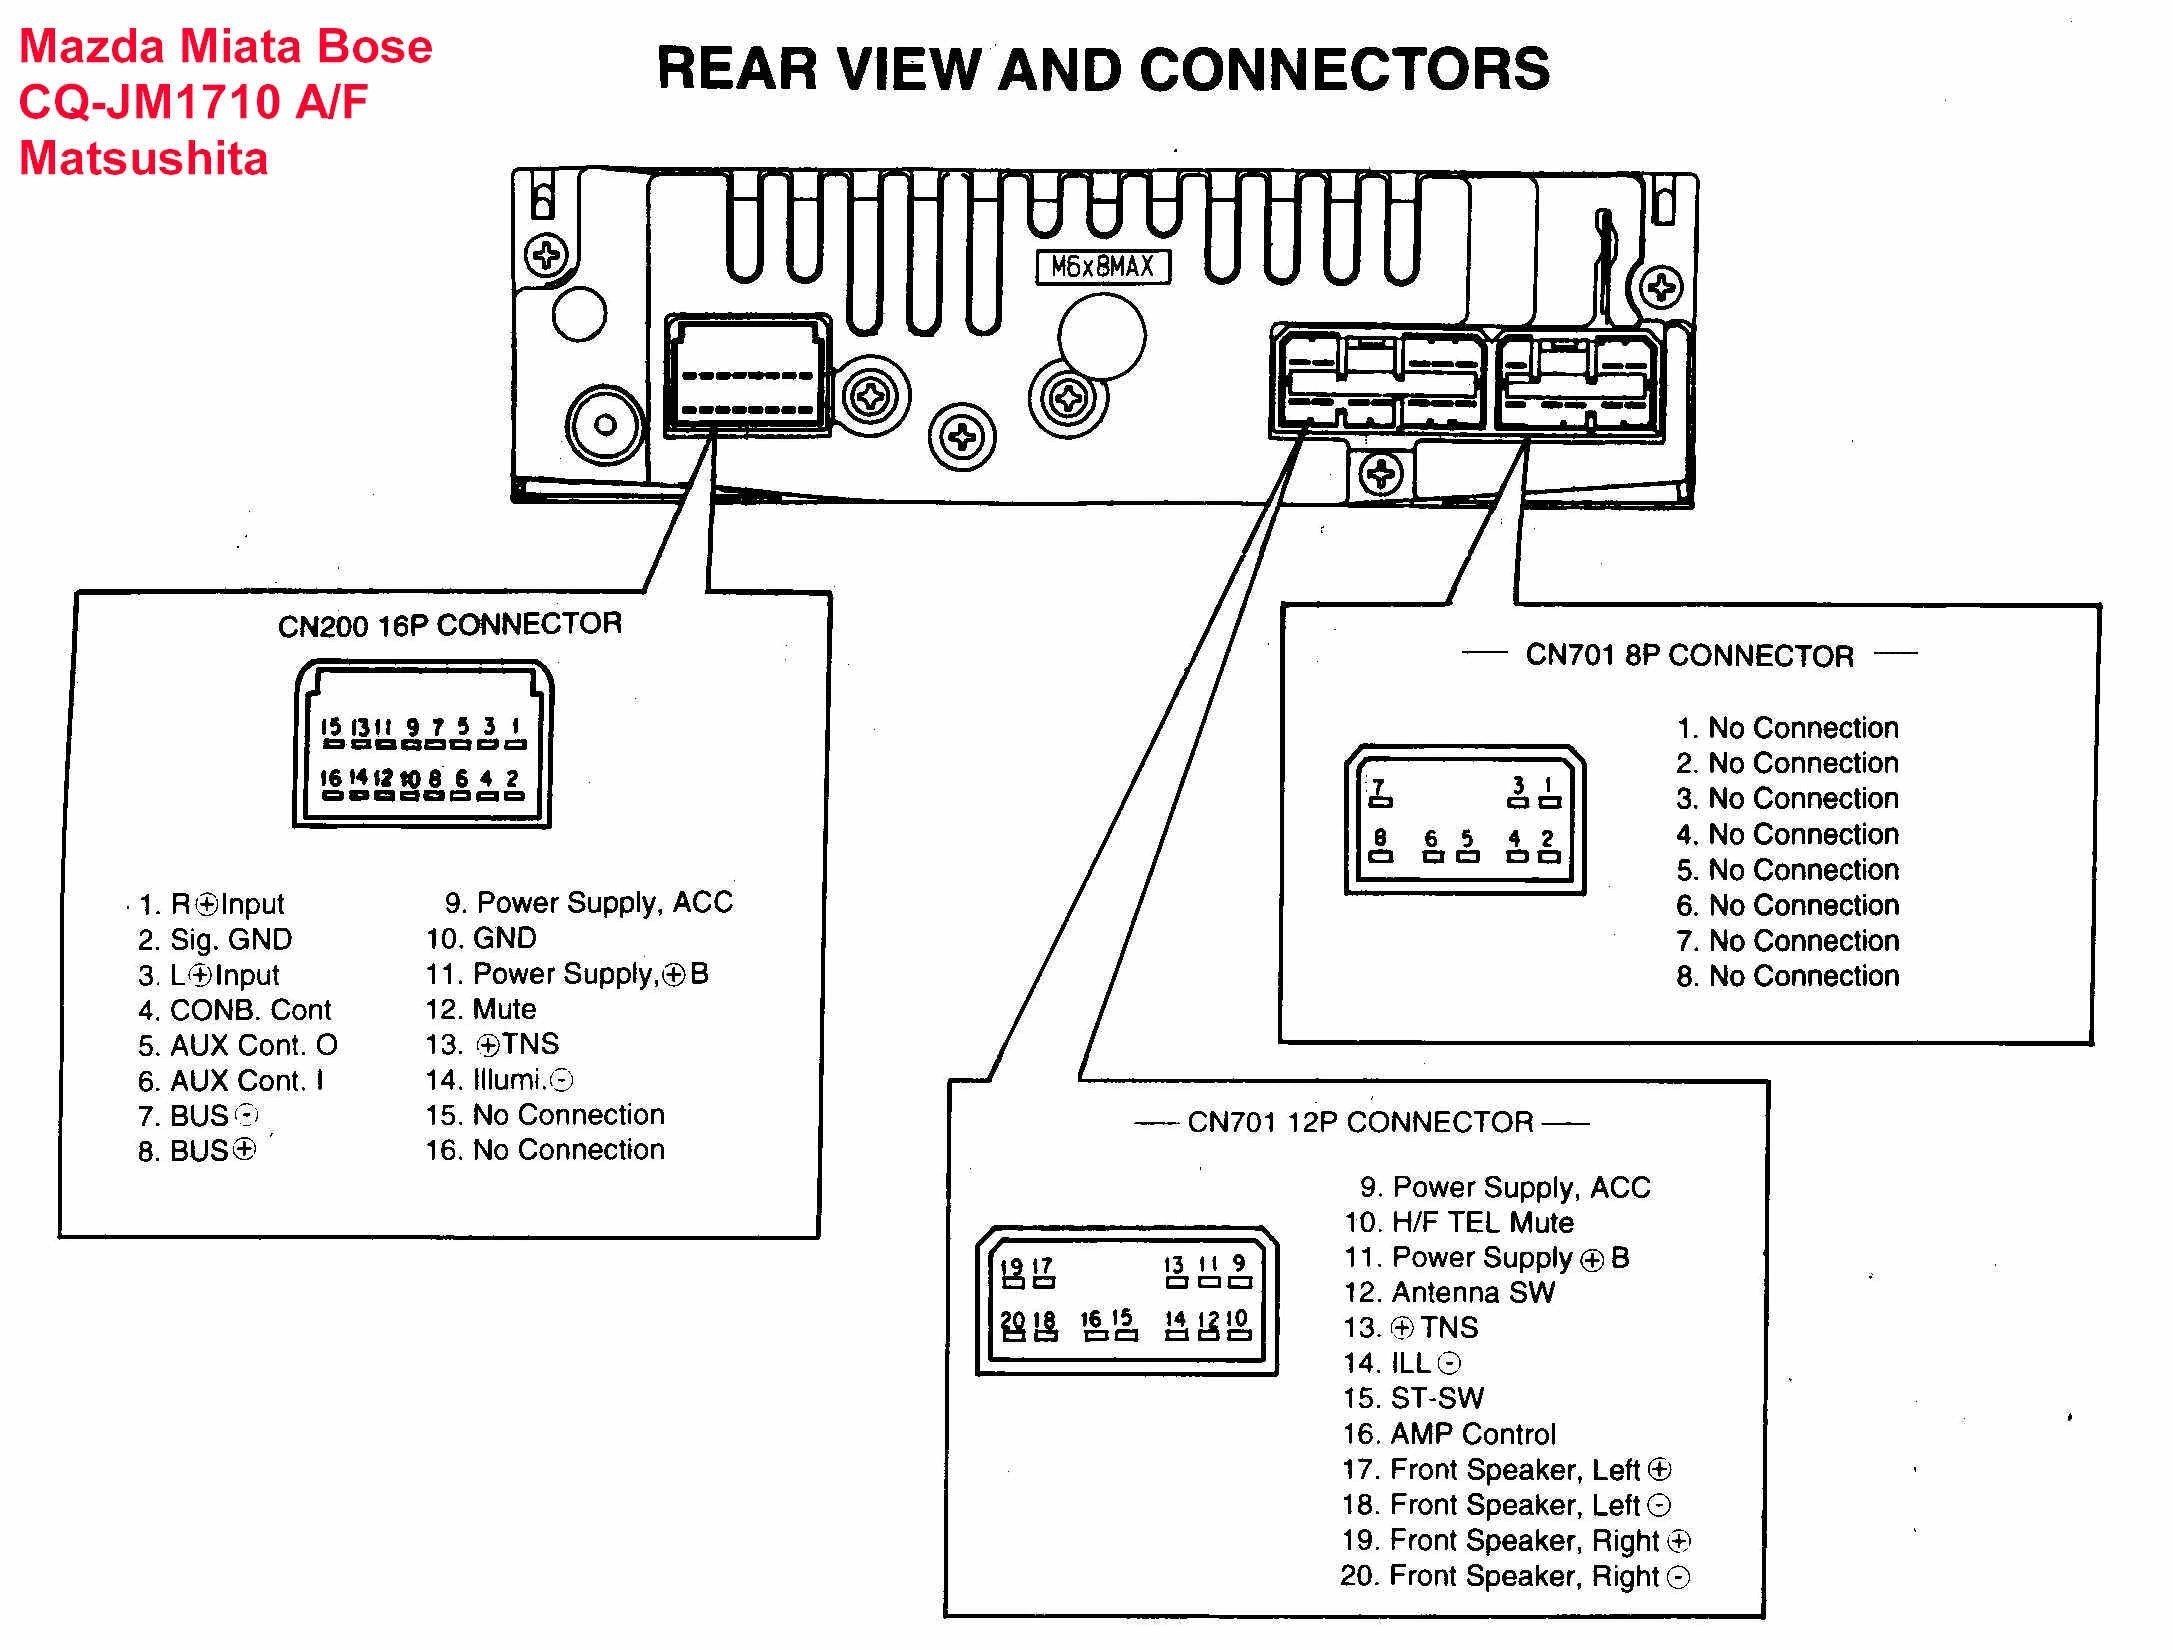 [DIAGRAM_1JK]  729B8 99 Bmw 323i Fuse Box | Wiring Library | 2000 Bmw 528i Fuse Box Power Amp |  | Wiring Library